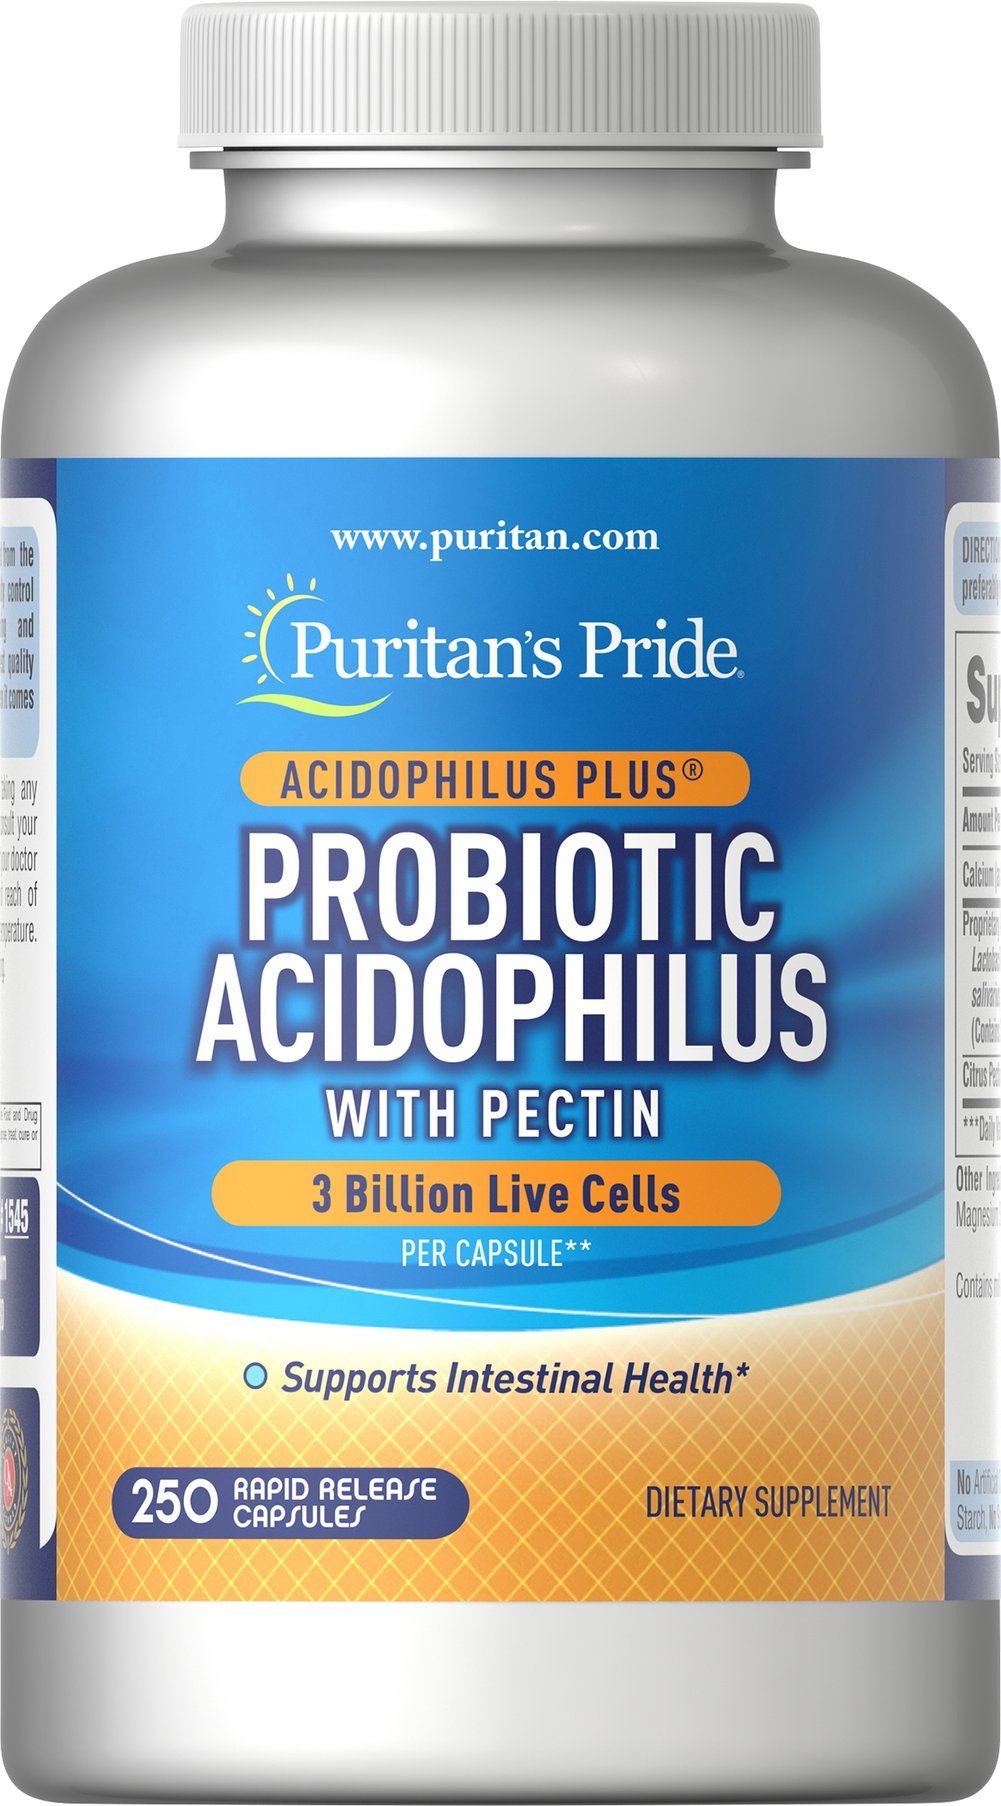 Probiotic Acidophilus with Pectin <p><strong>Supports intestinal health for the optimal absorption of nutrients**</strong></p><p>Guaranteed to provide three billion live cells per capsule at the time of manufacture.</p><p>Includes Acidophilus to support favorable environment for nutrients.</p><p>Encourages intestinal microflora balance**</p><p>Promotes healthy functioning of intestinal system.**</p> 250 Capsules 3 billion $2